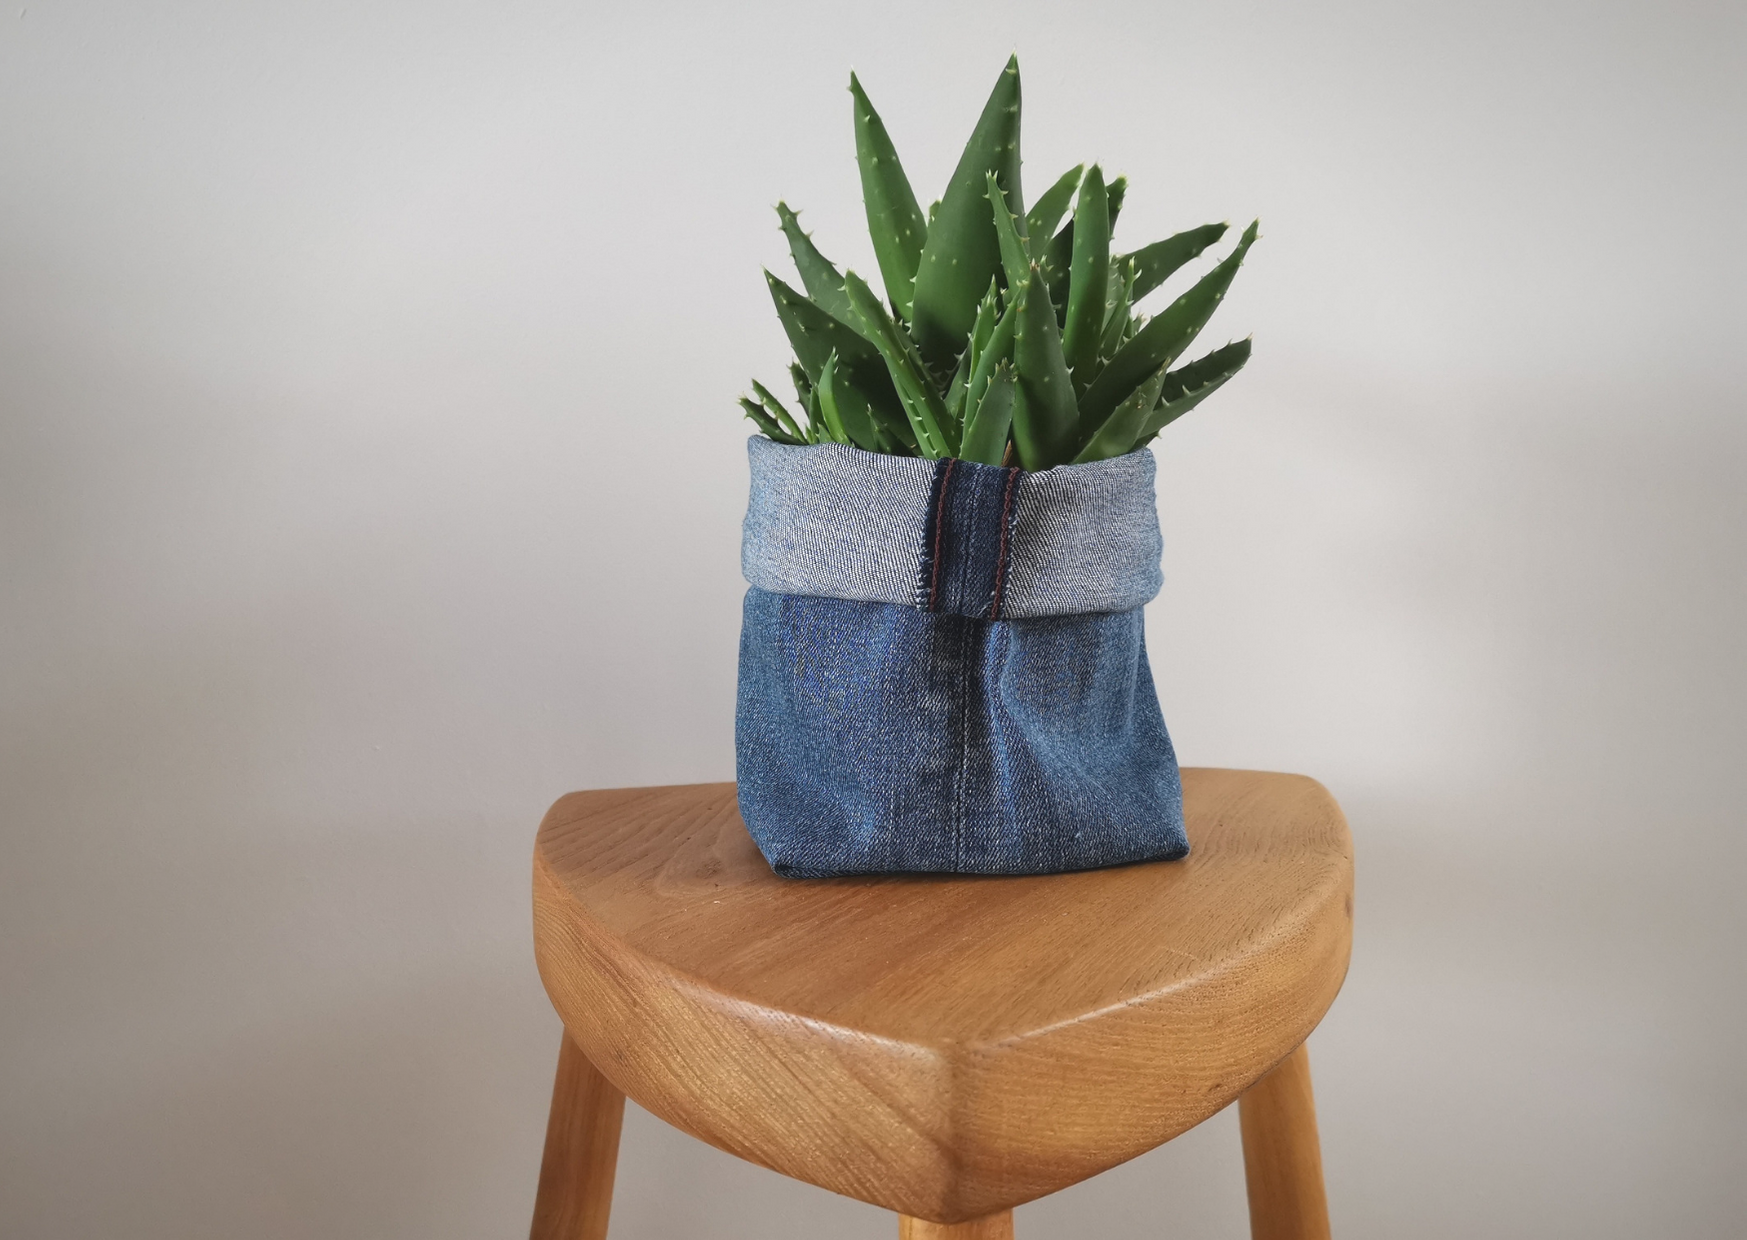 The finished denim plant pot with an aloe vera in ot on a three legged wooden stool.